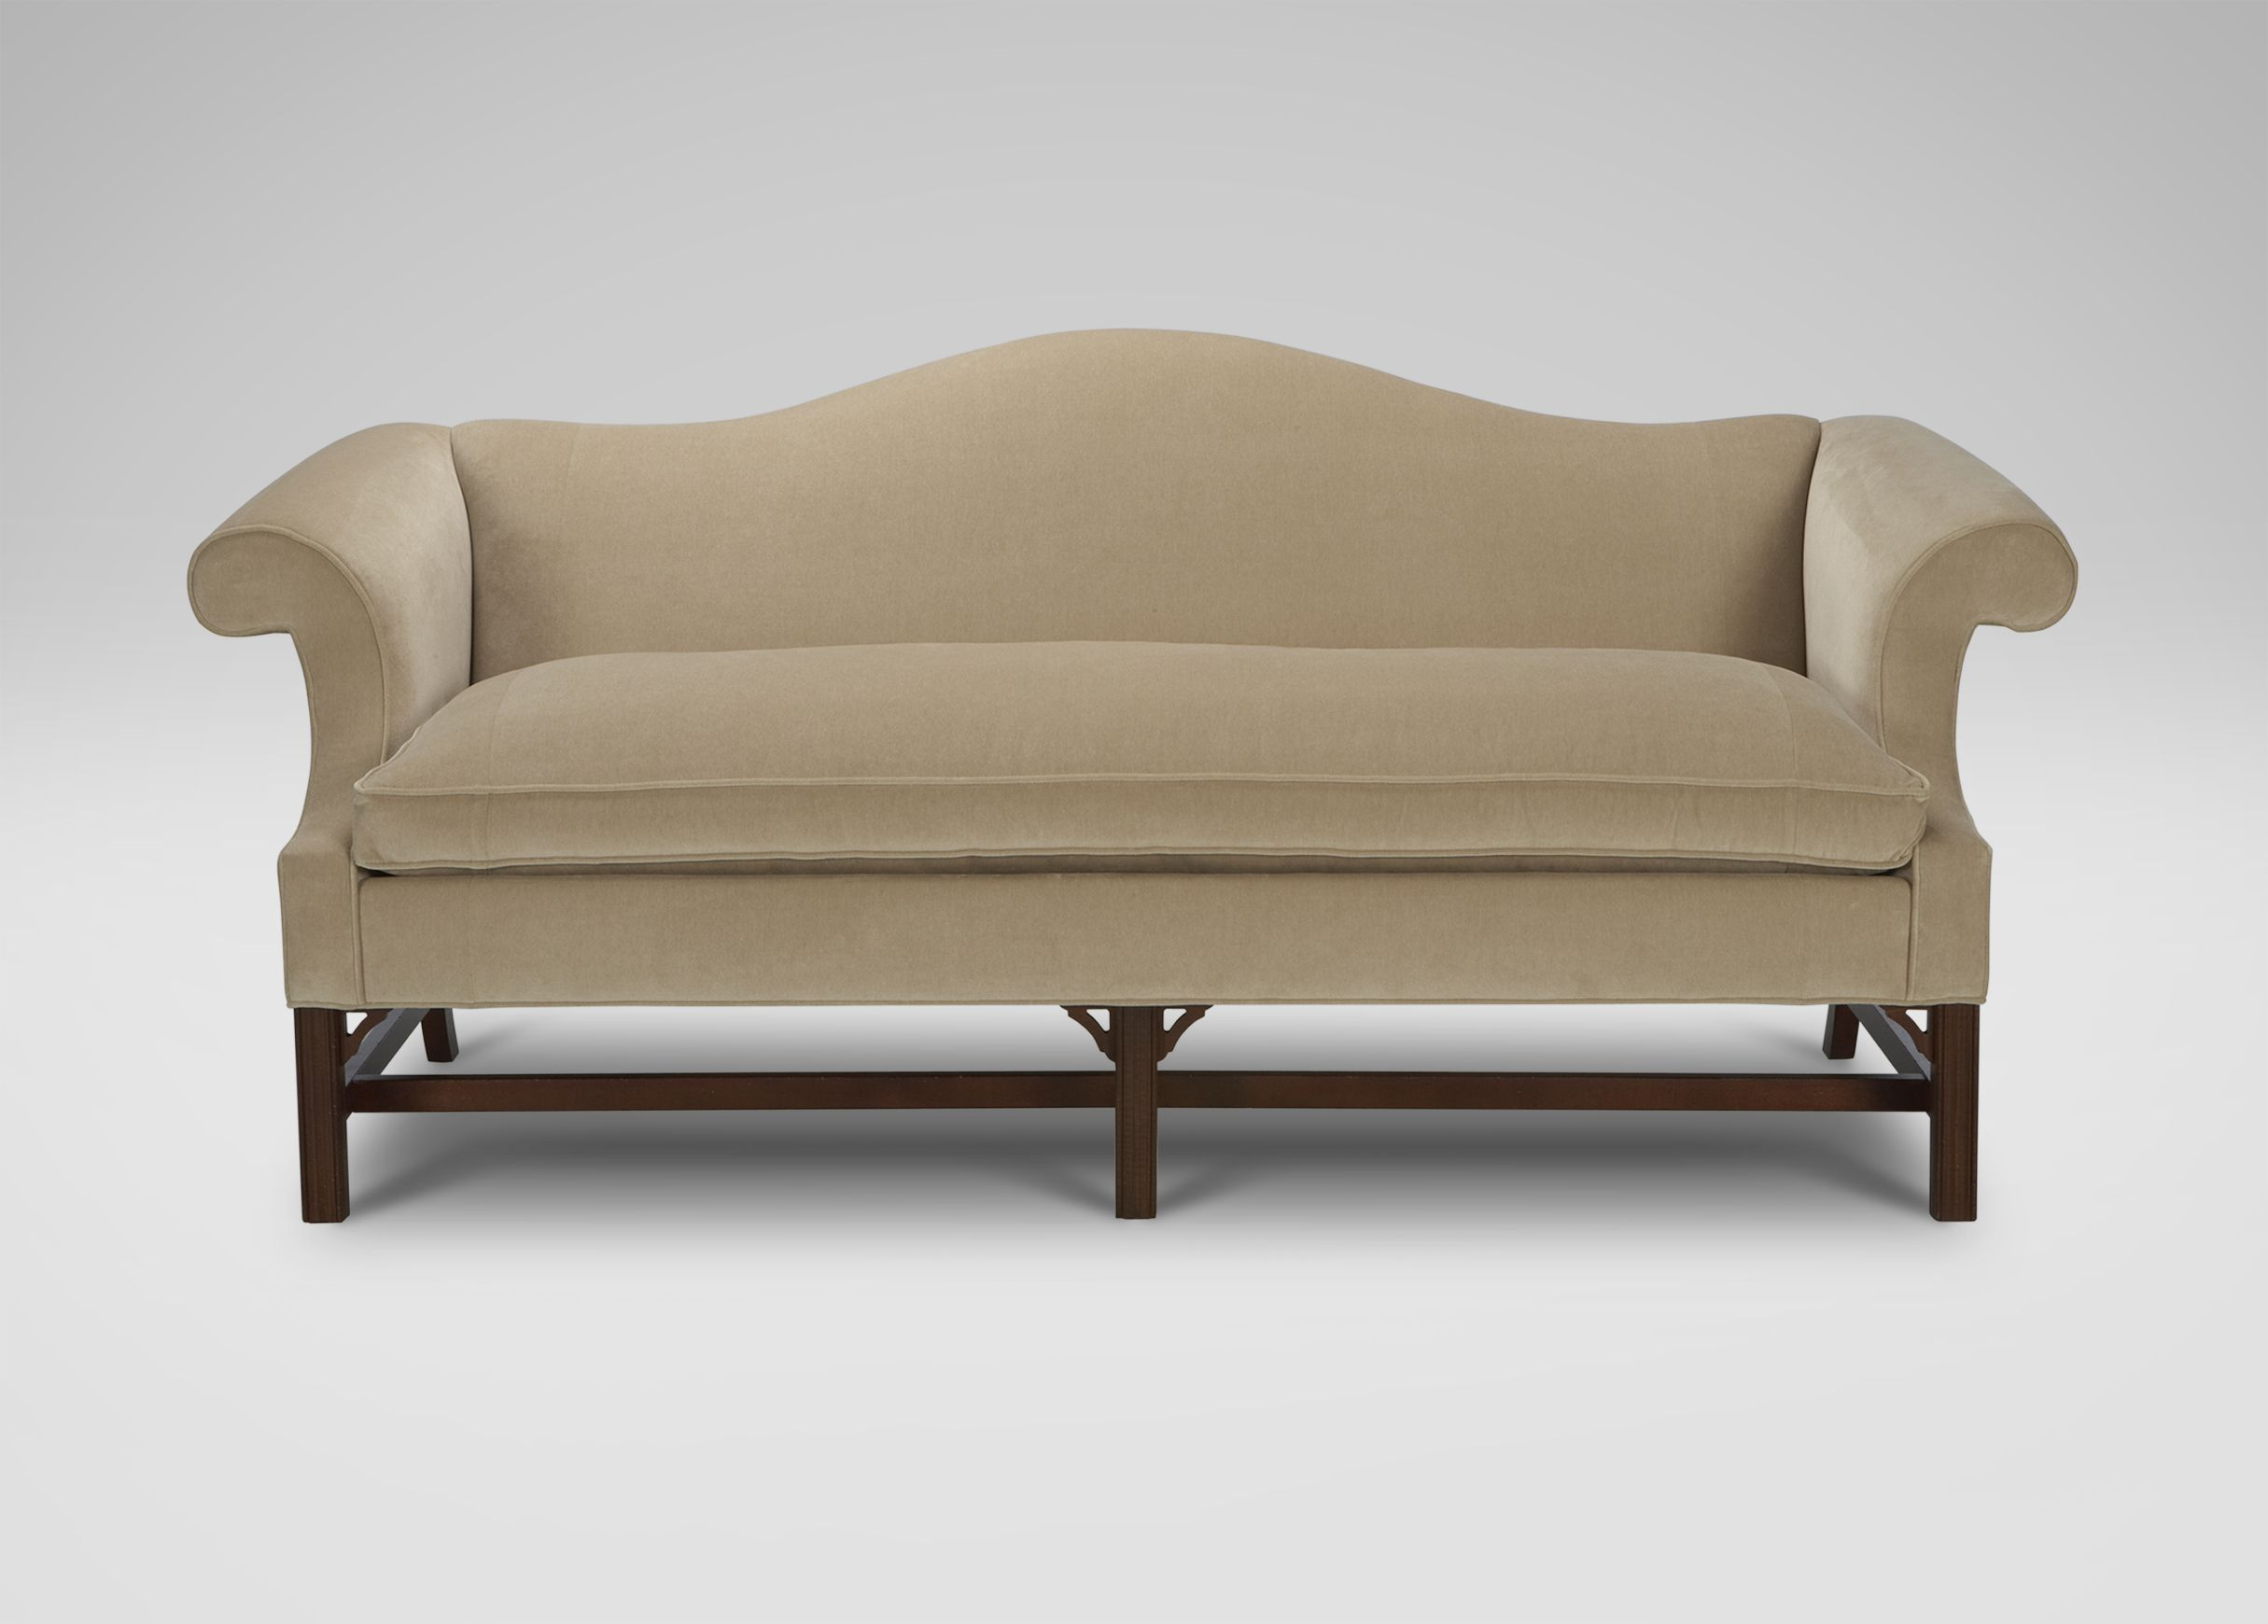 Chippendale Sofas Ethan Allen Oatmeal 2k Furniture I